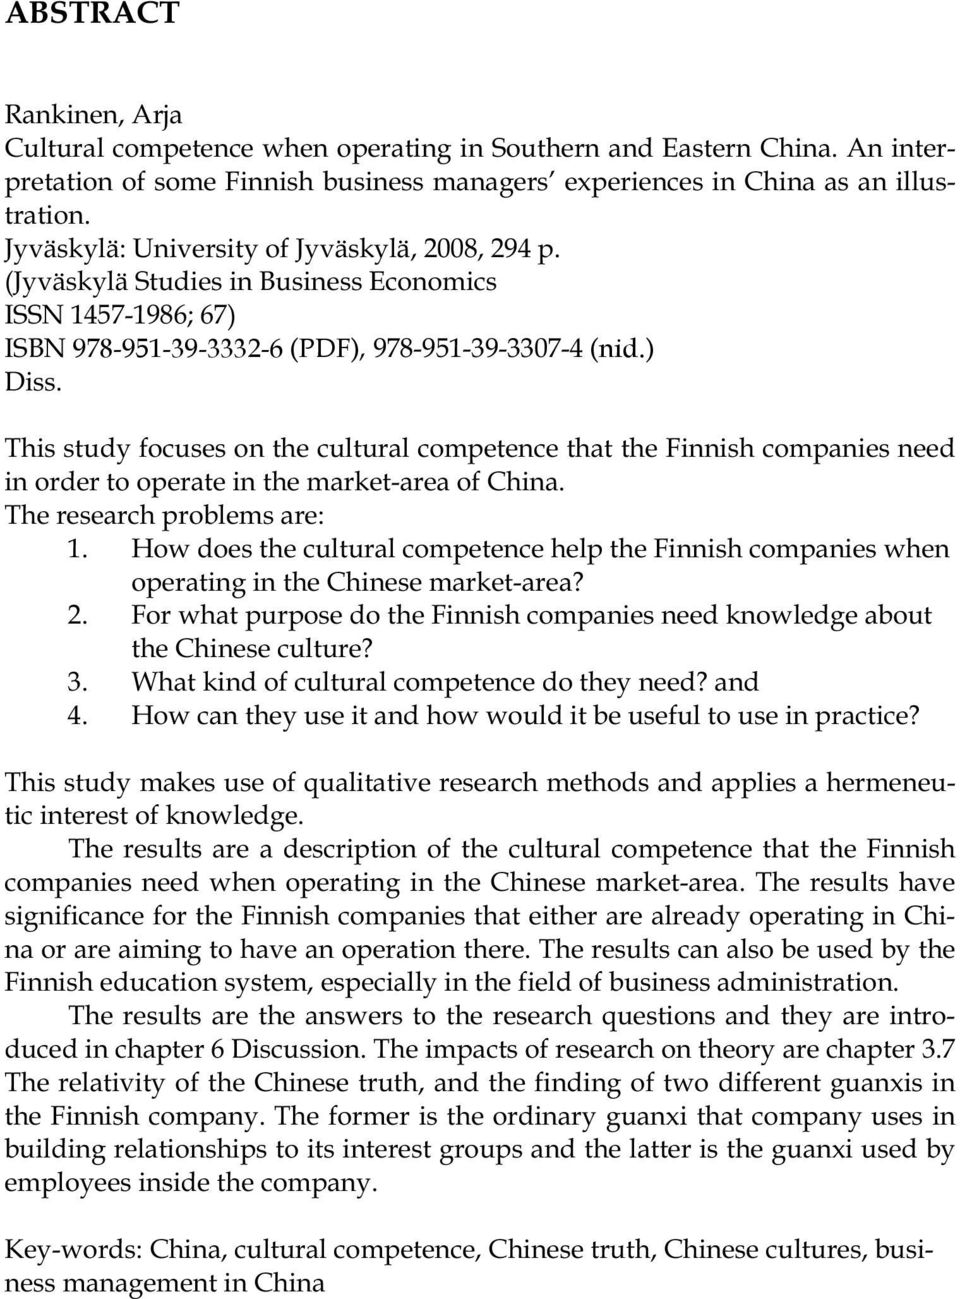 This study focuses on the cultural competence that the Finnish companies need in order to operate in the market-area of China. The research problems are: 1.